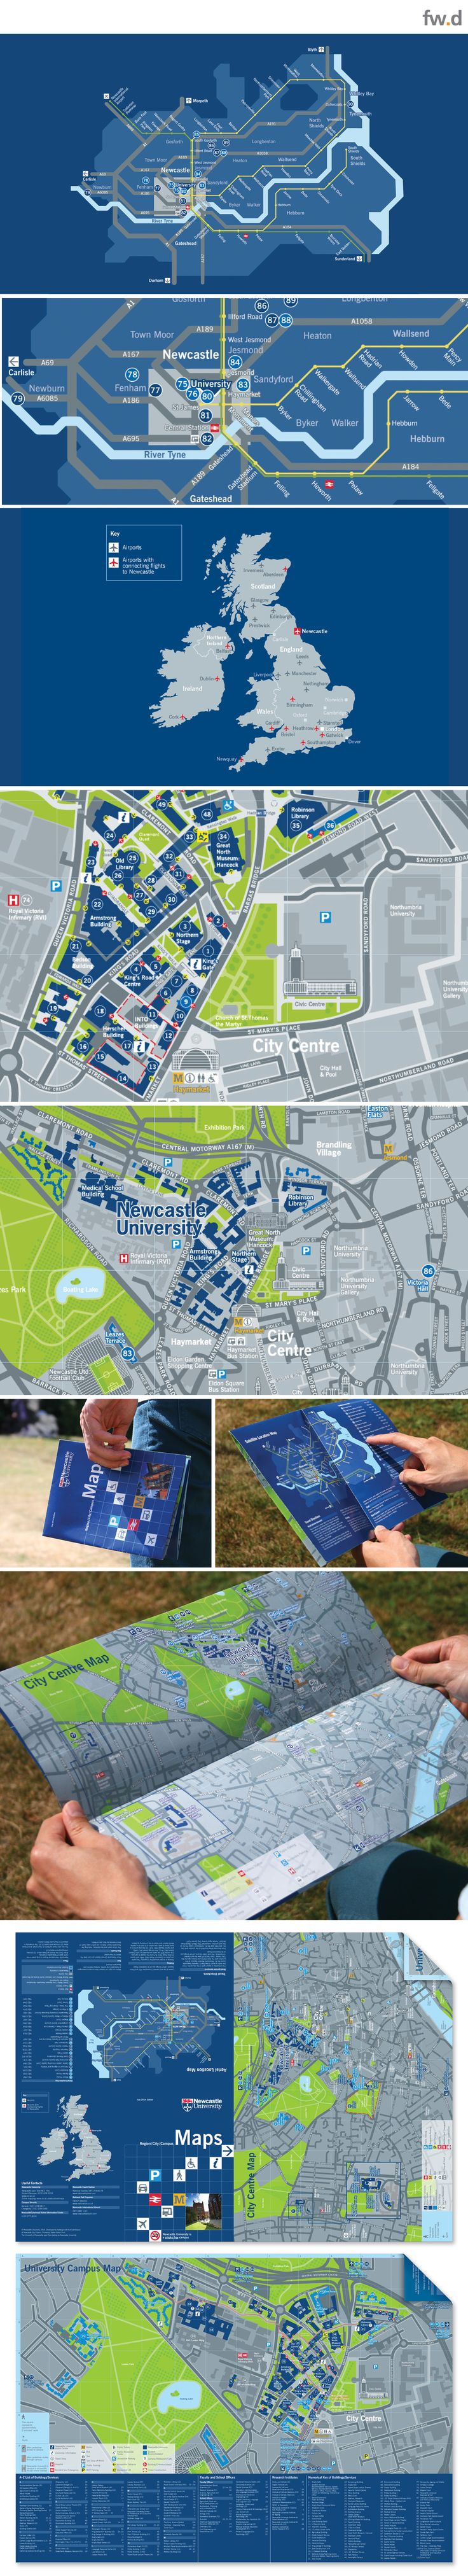 Range of campus wayfinding maps for Newcastle University by fwdesign